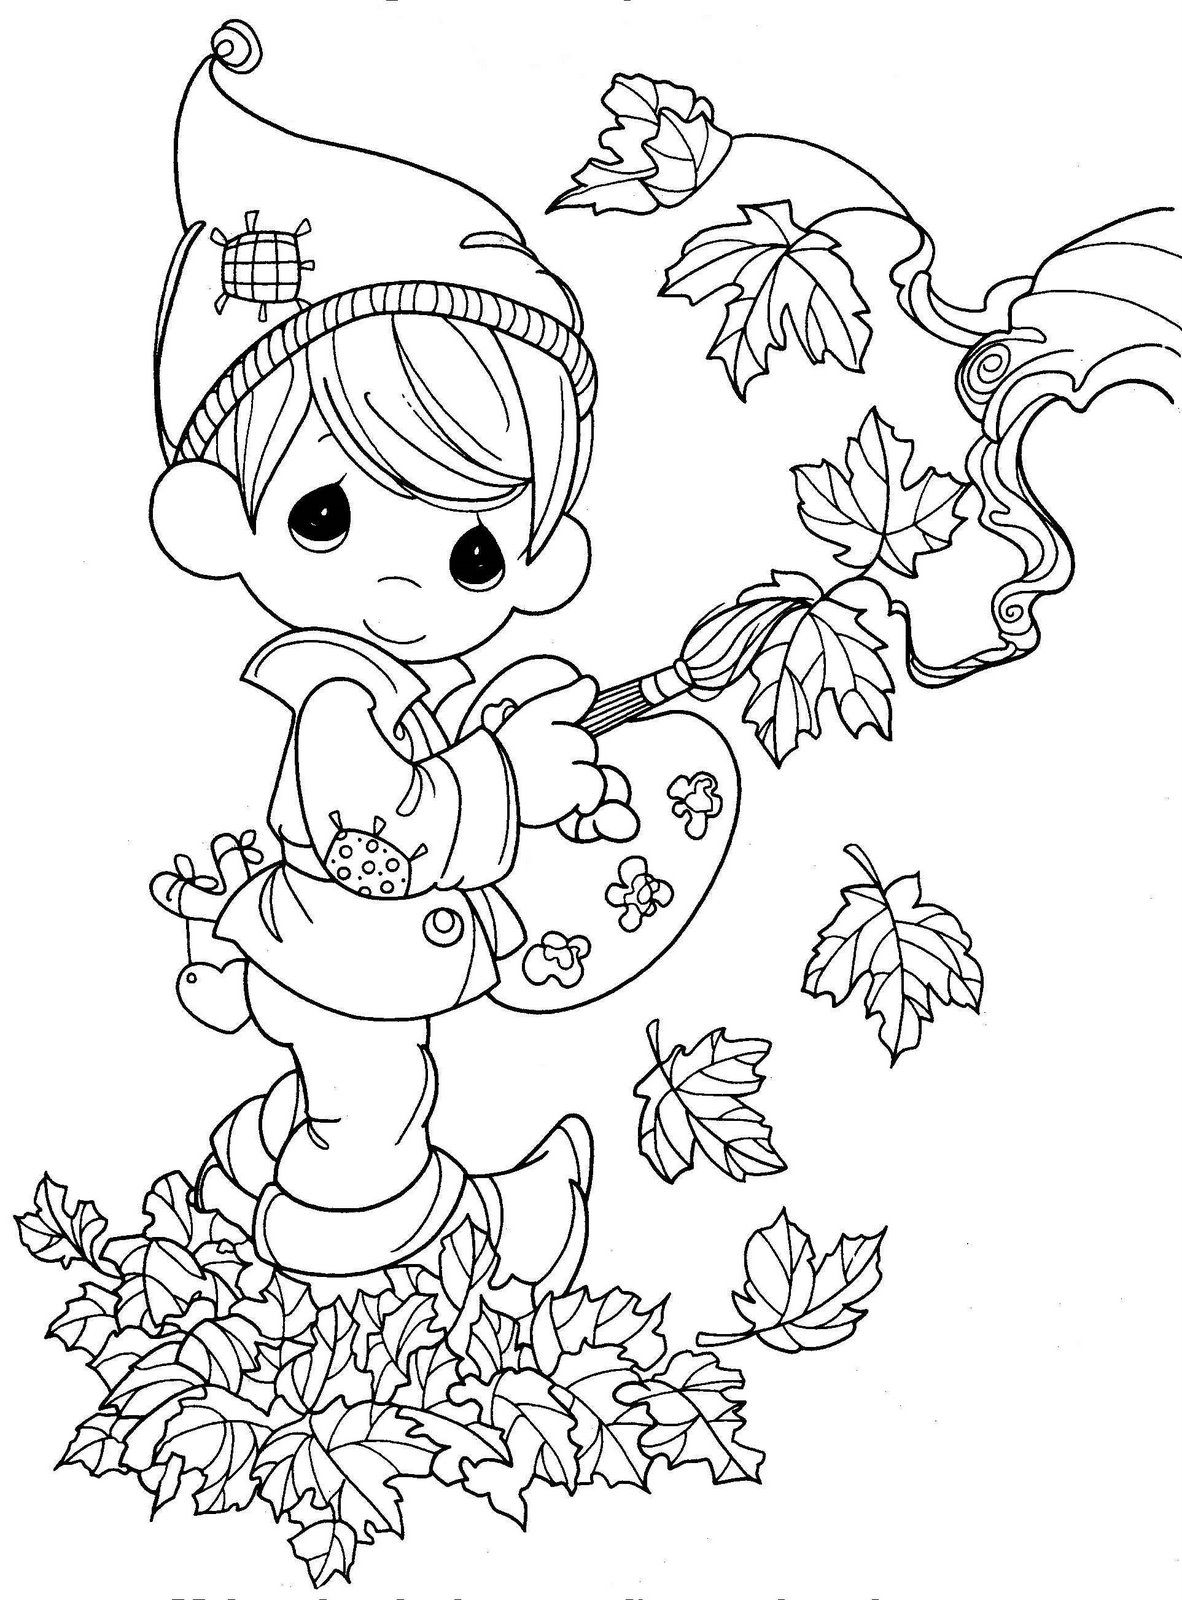 coloring pages fall themed - photo#47